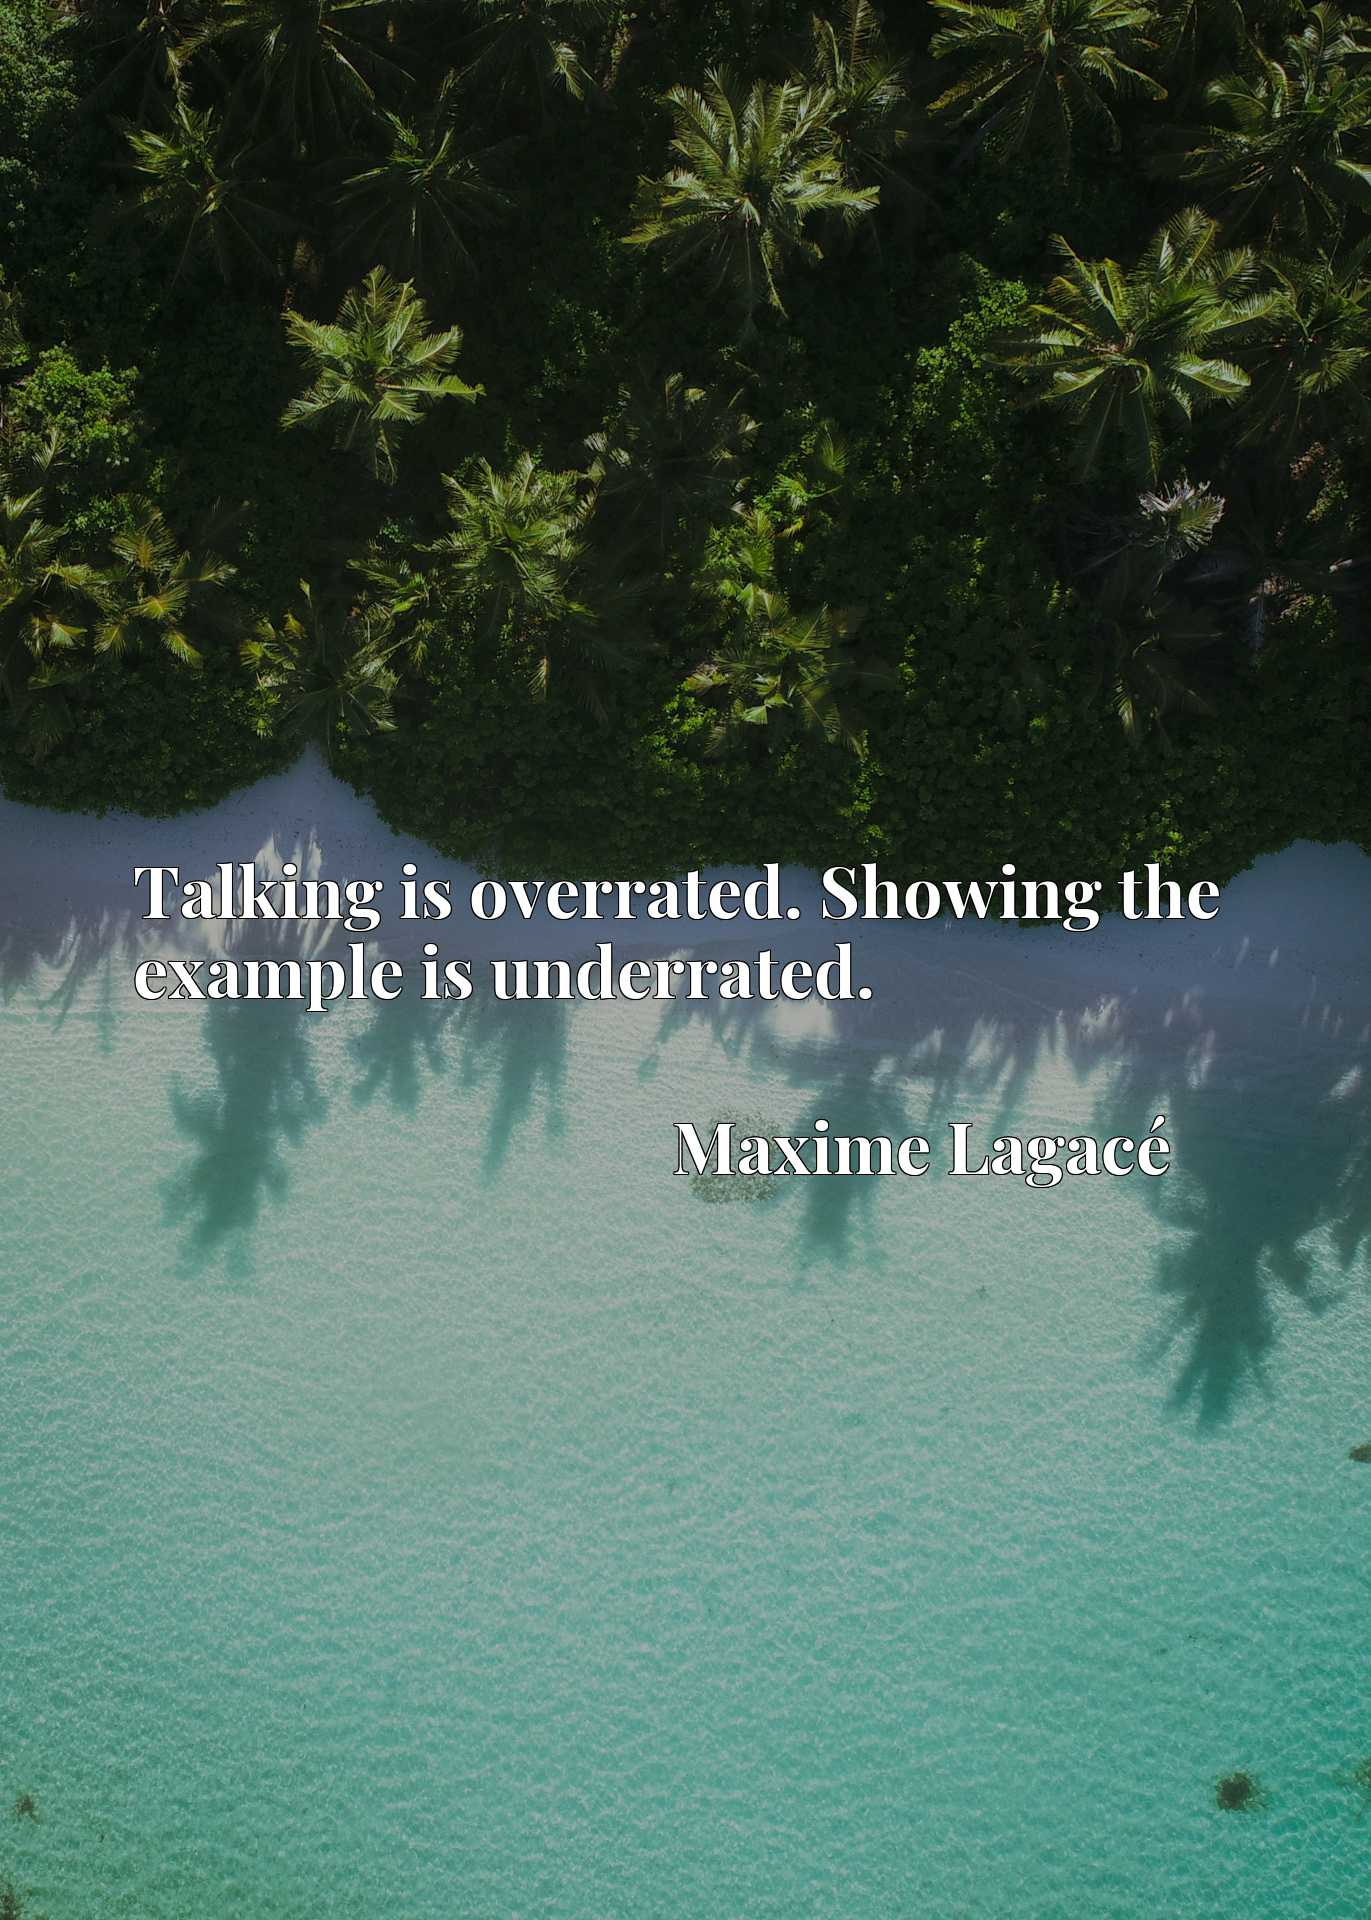 Talking is overrated. Showing the example is underrated.